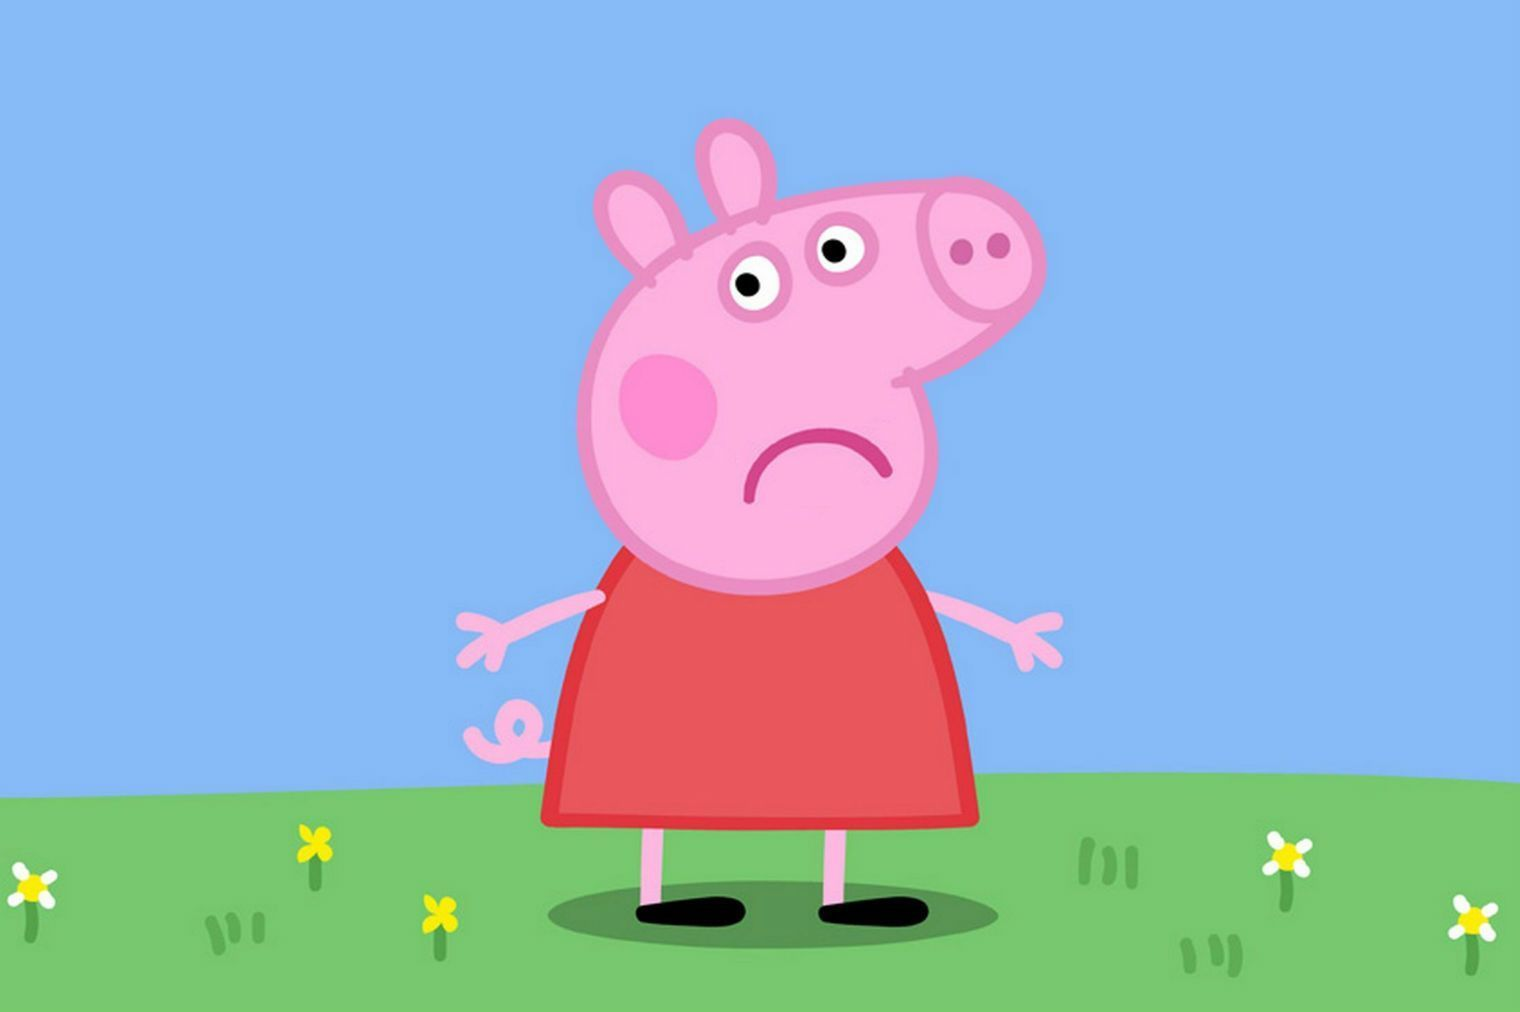 Disney HD Wallpapers Peppa Pig HD Backgrounds